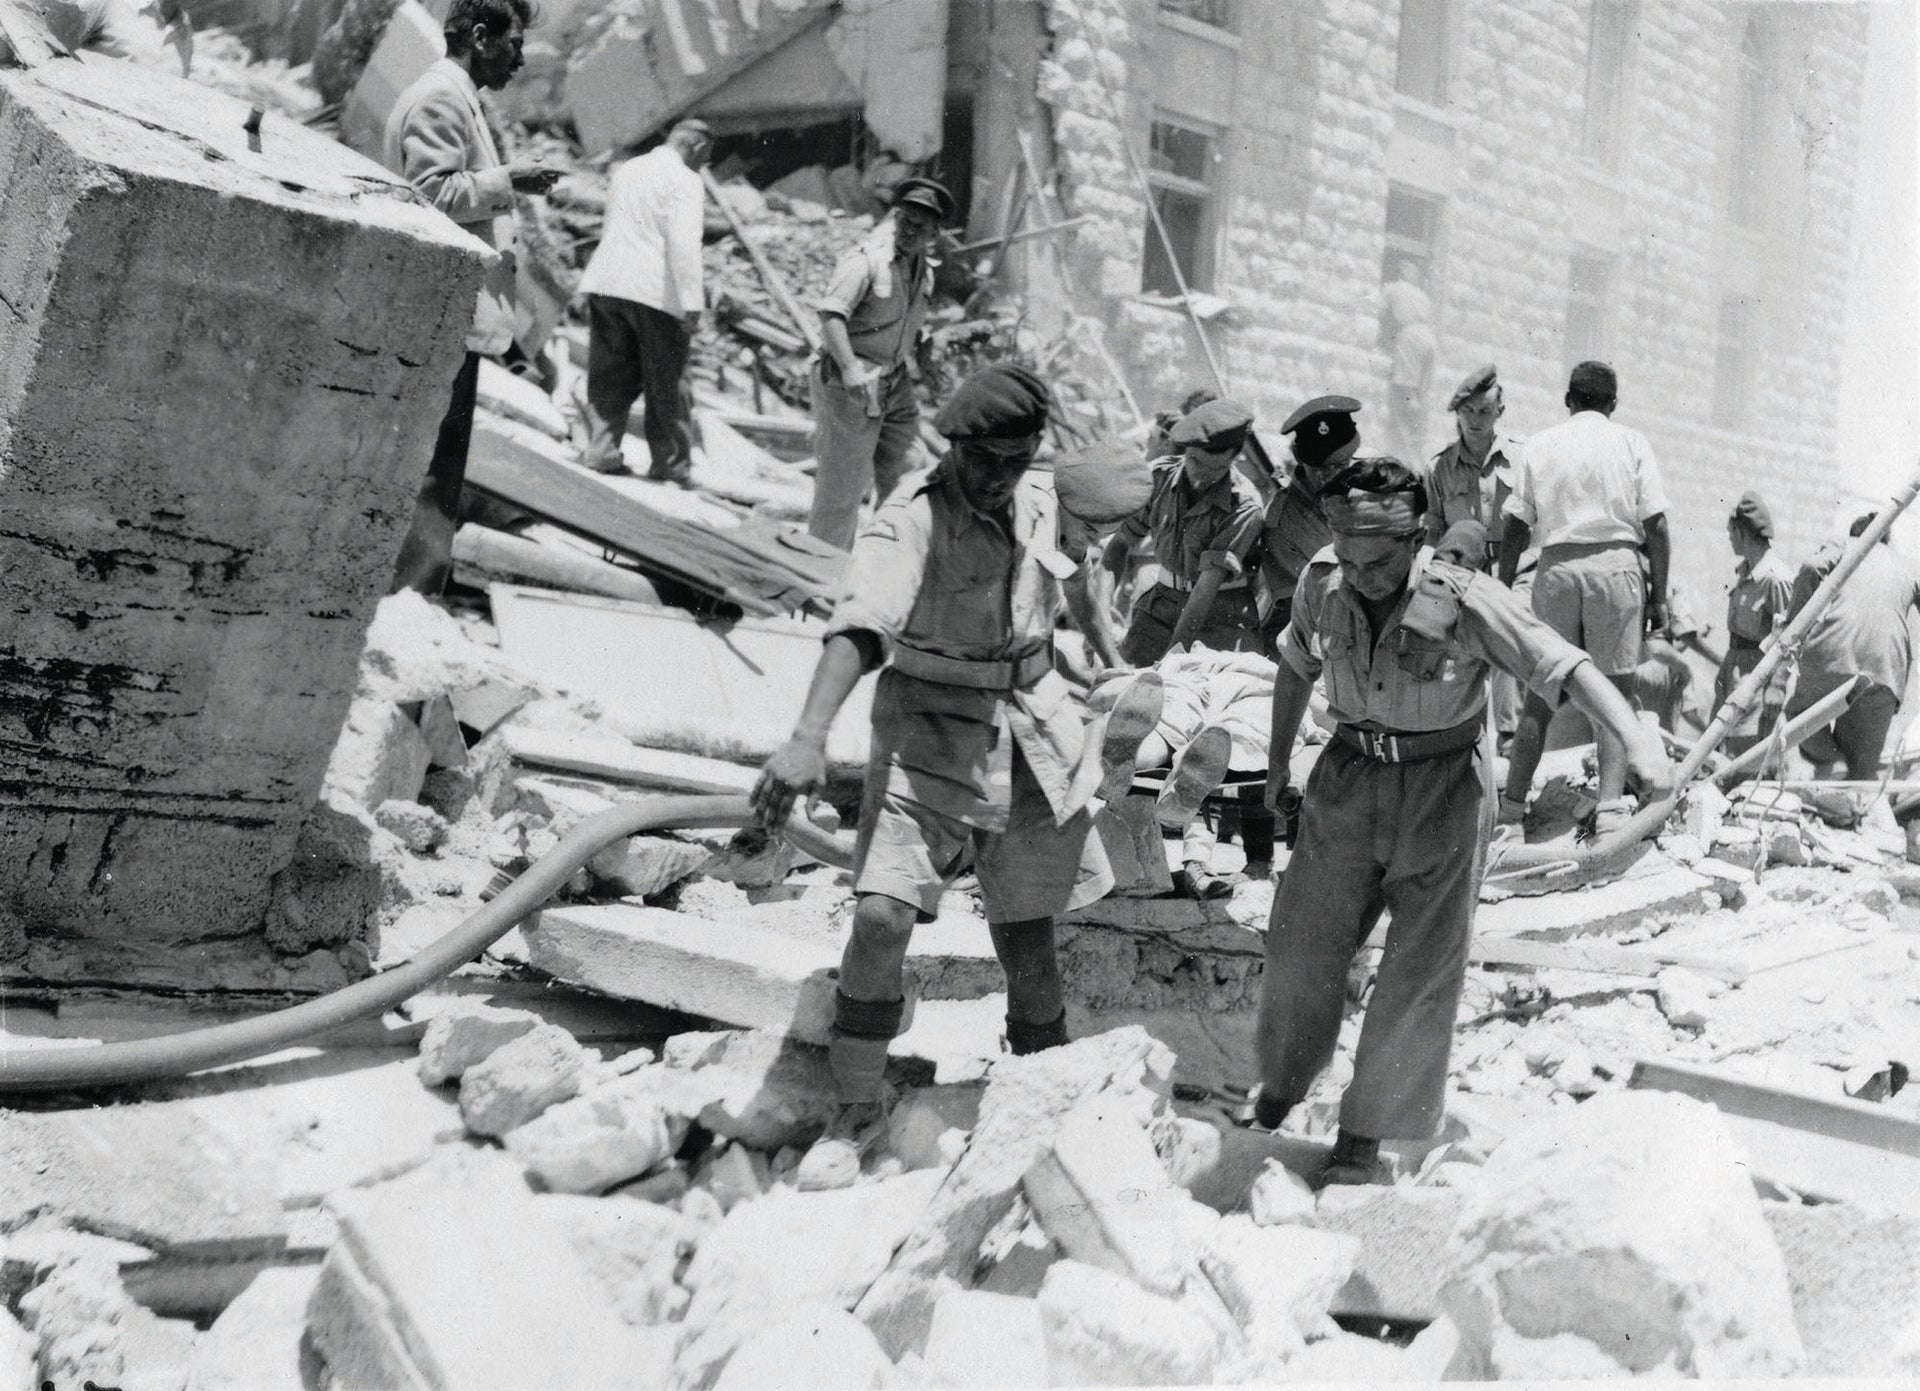 The aftermath of the 1946 attack on the King David Hotel in Jerusalem